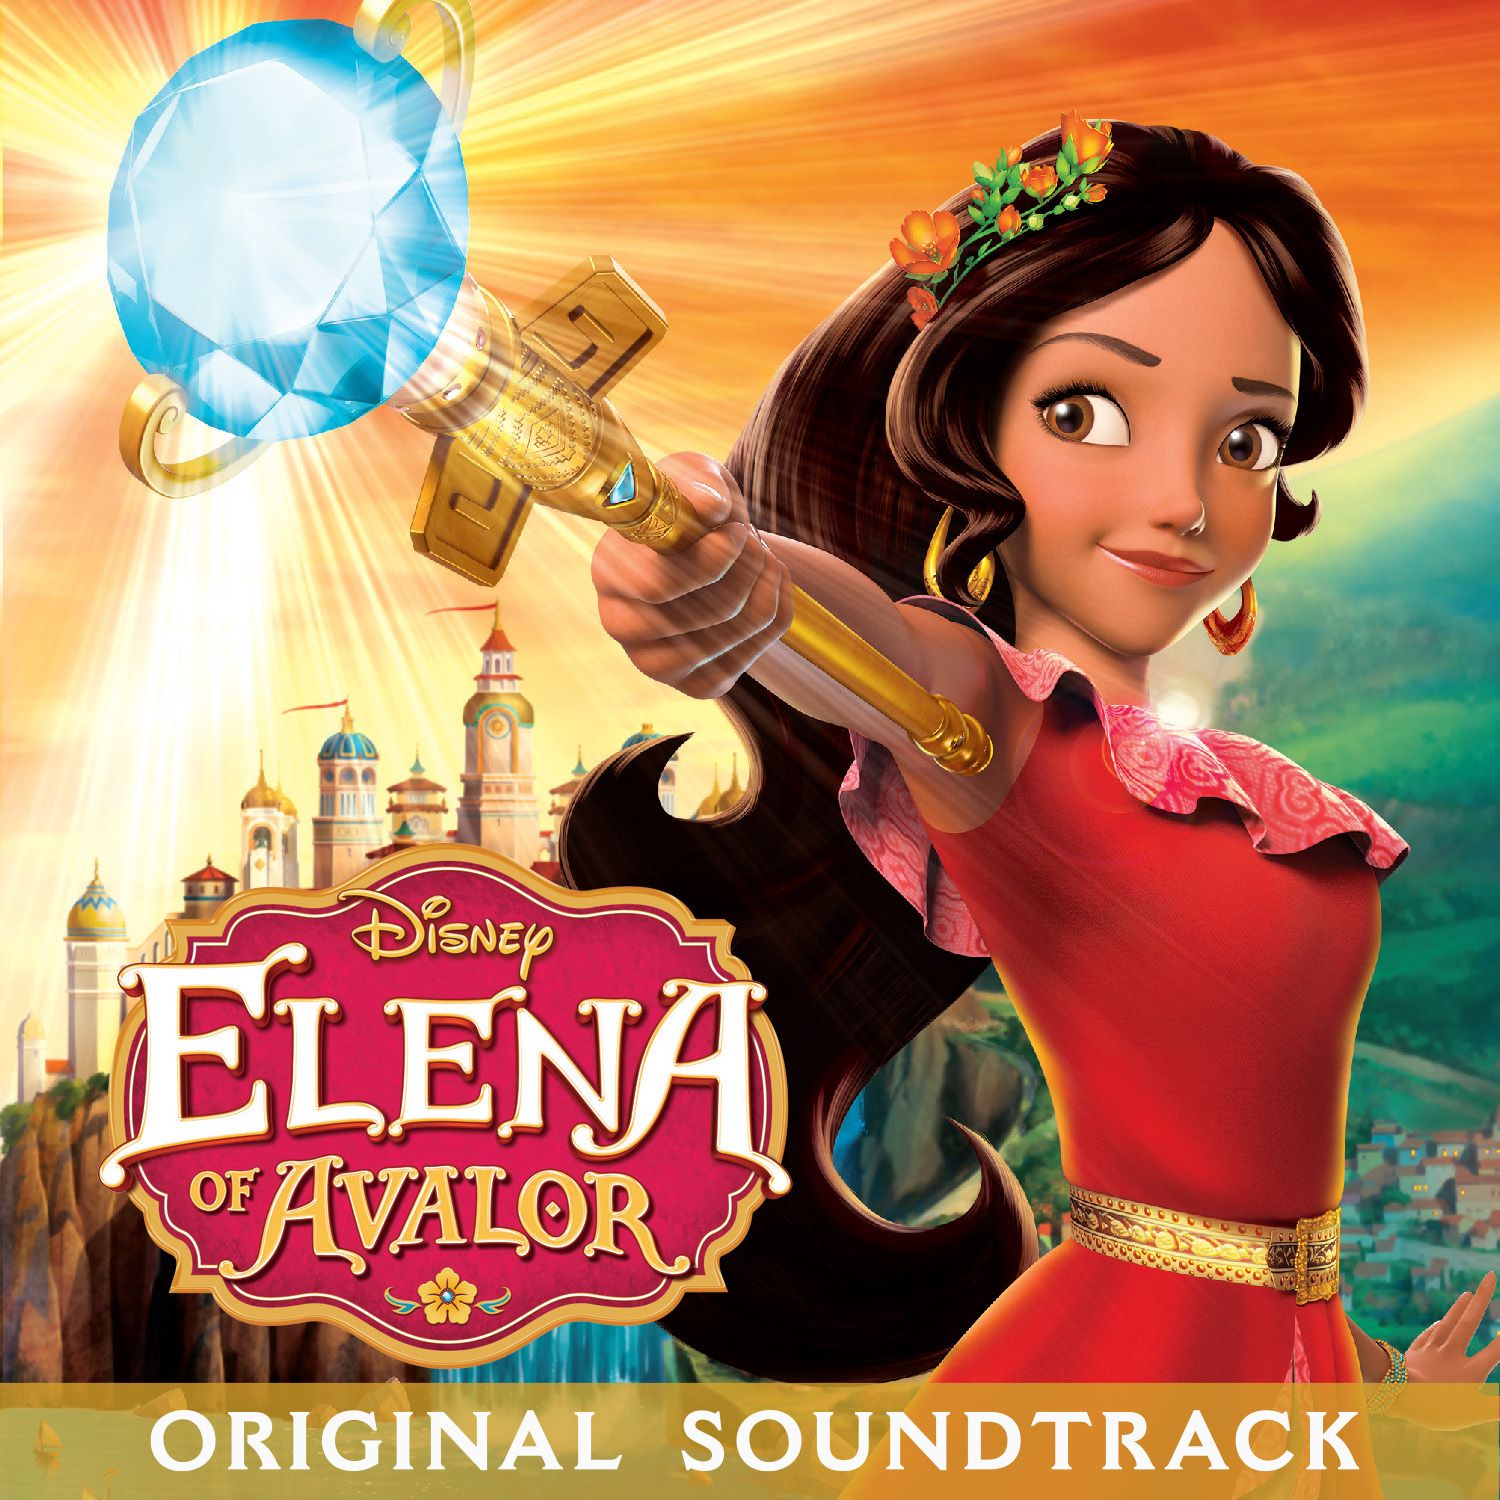 Soundtrack Review: Elena of Avalor